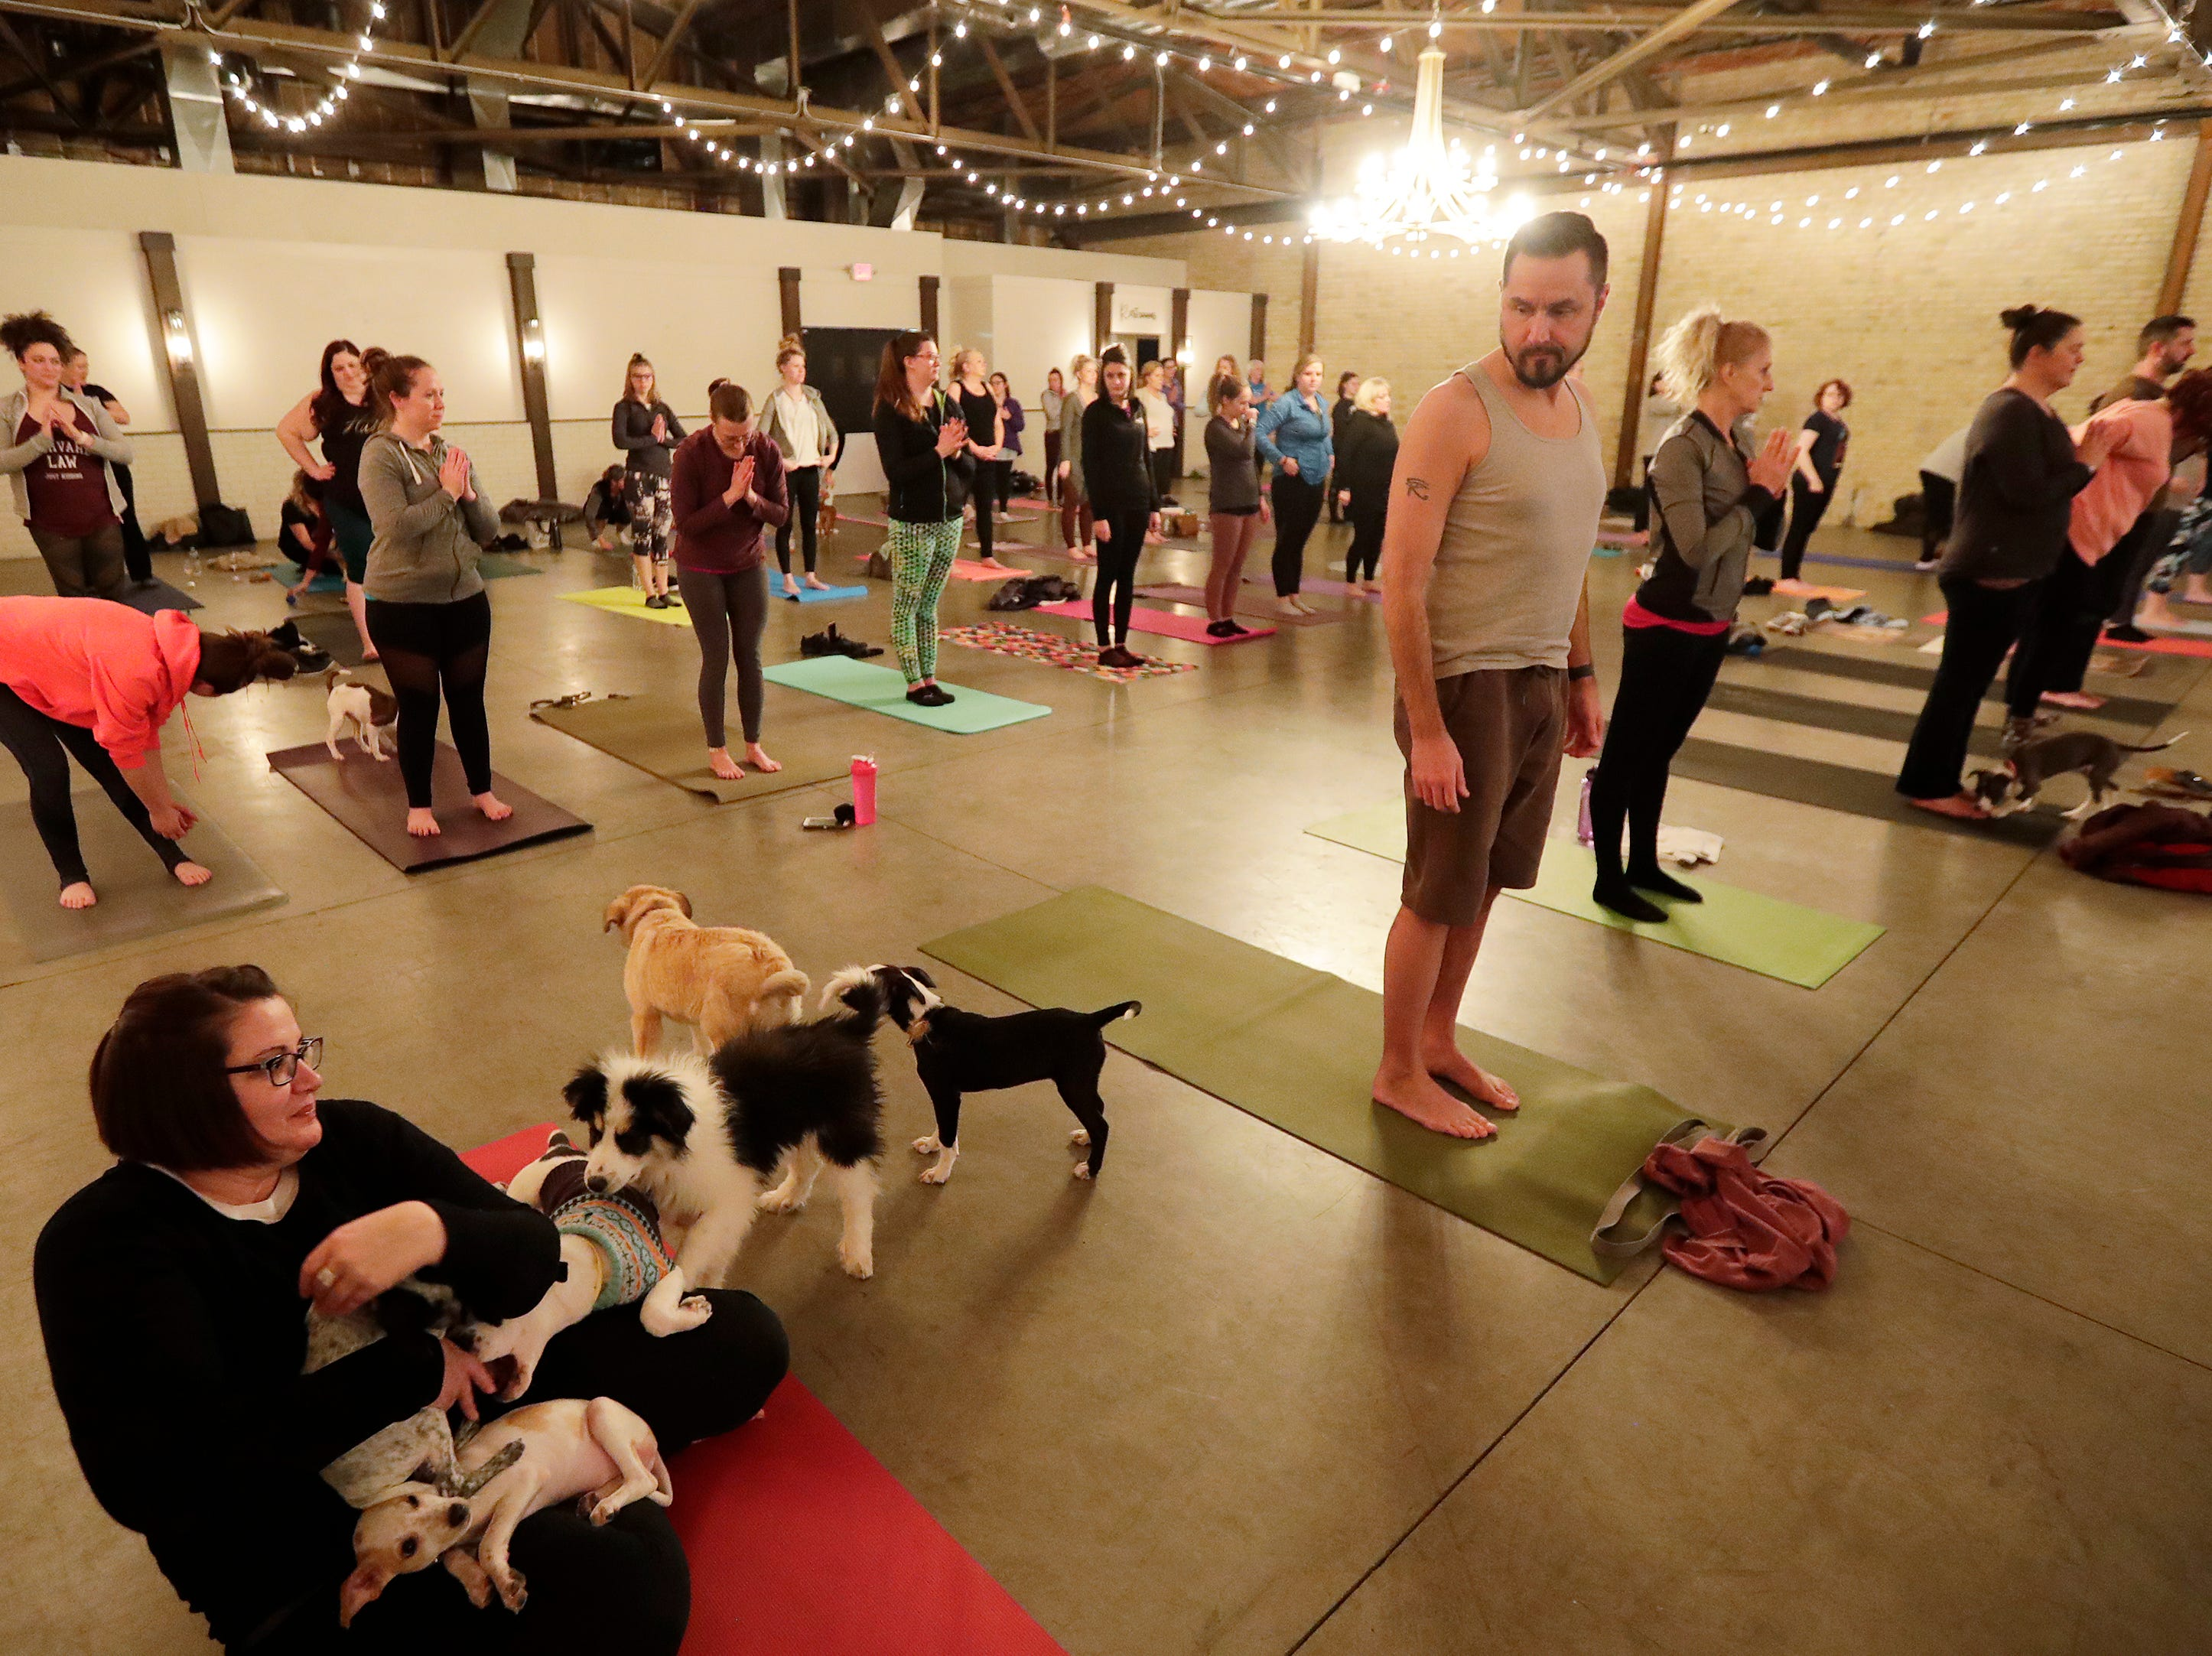 Puppies from Lucky 7 Dog Rescue run around and play during a Yoga With Puppies class at Gather on Broadway on Wednesday, January 9, 2019 in Green Bay, Wis.